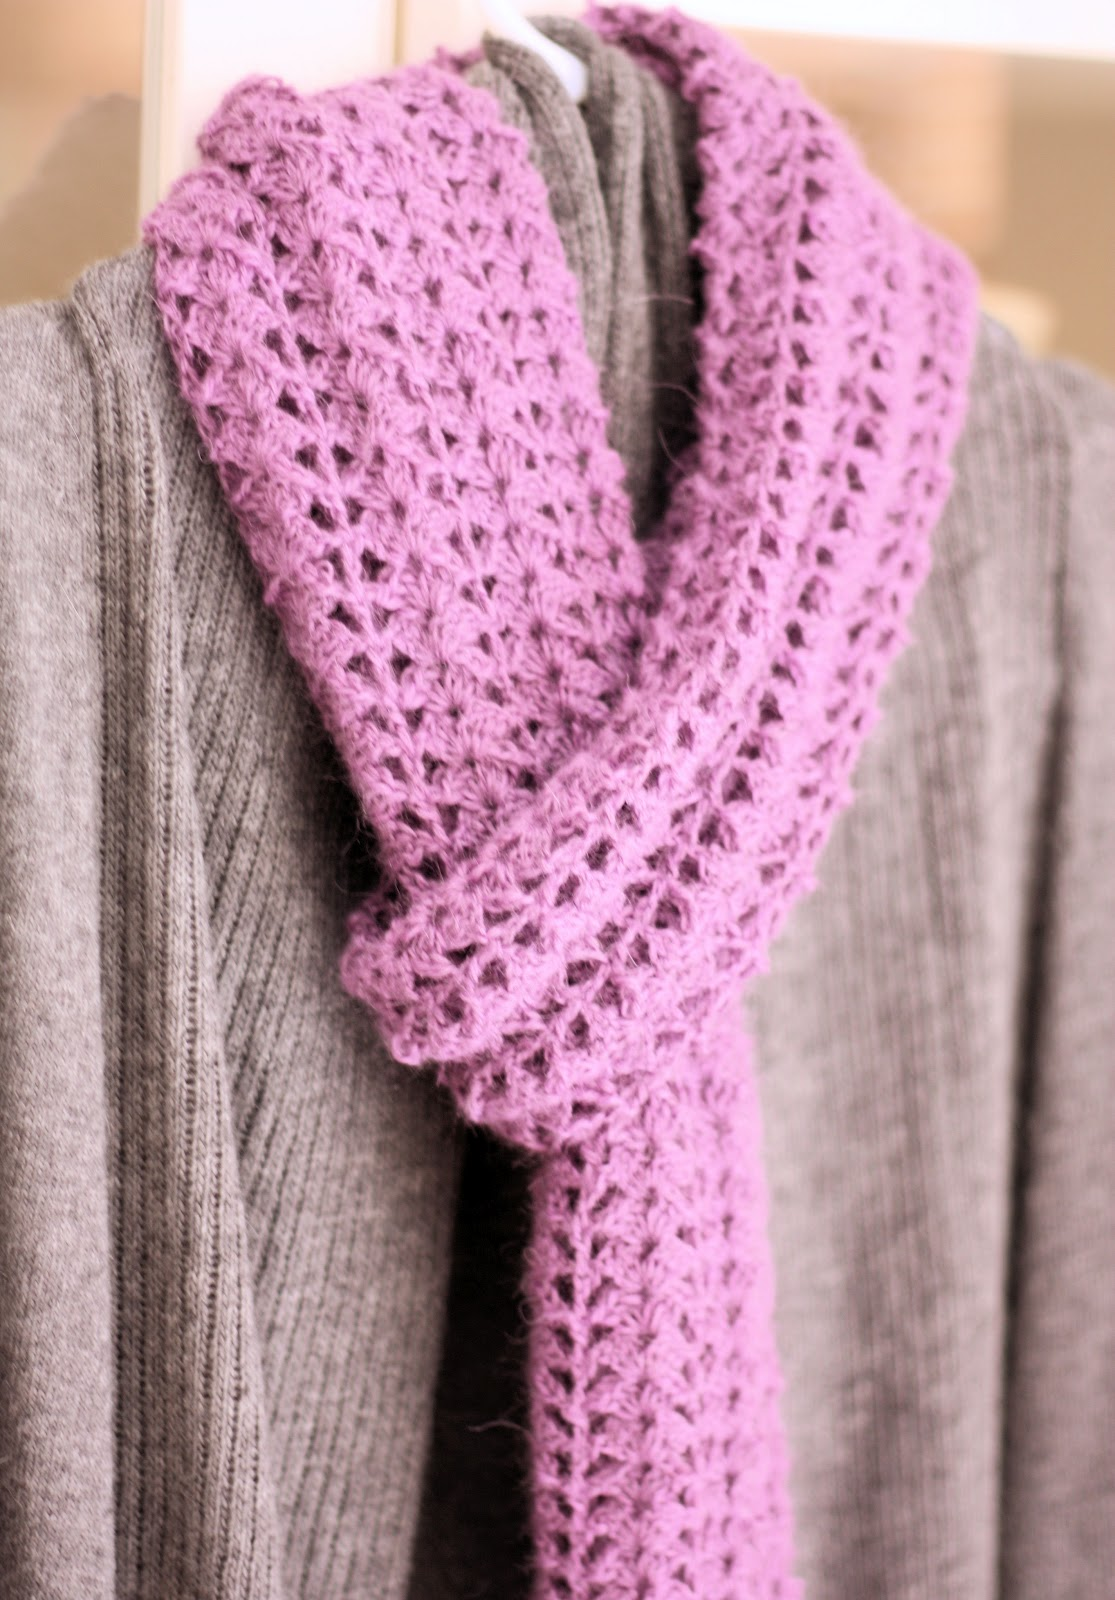 Free Crochet Patterns For Dressy Scarves : Crocheted Scarf {Free Pattern} - A Spoonful of Sugar